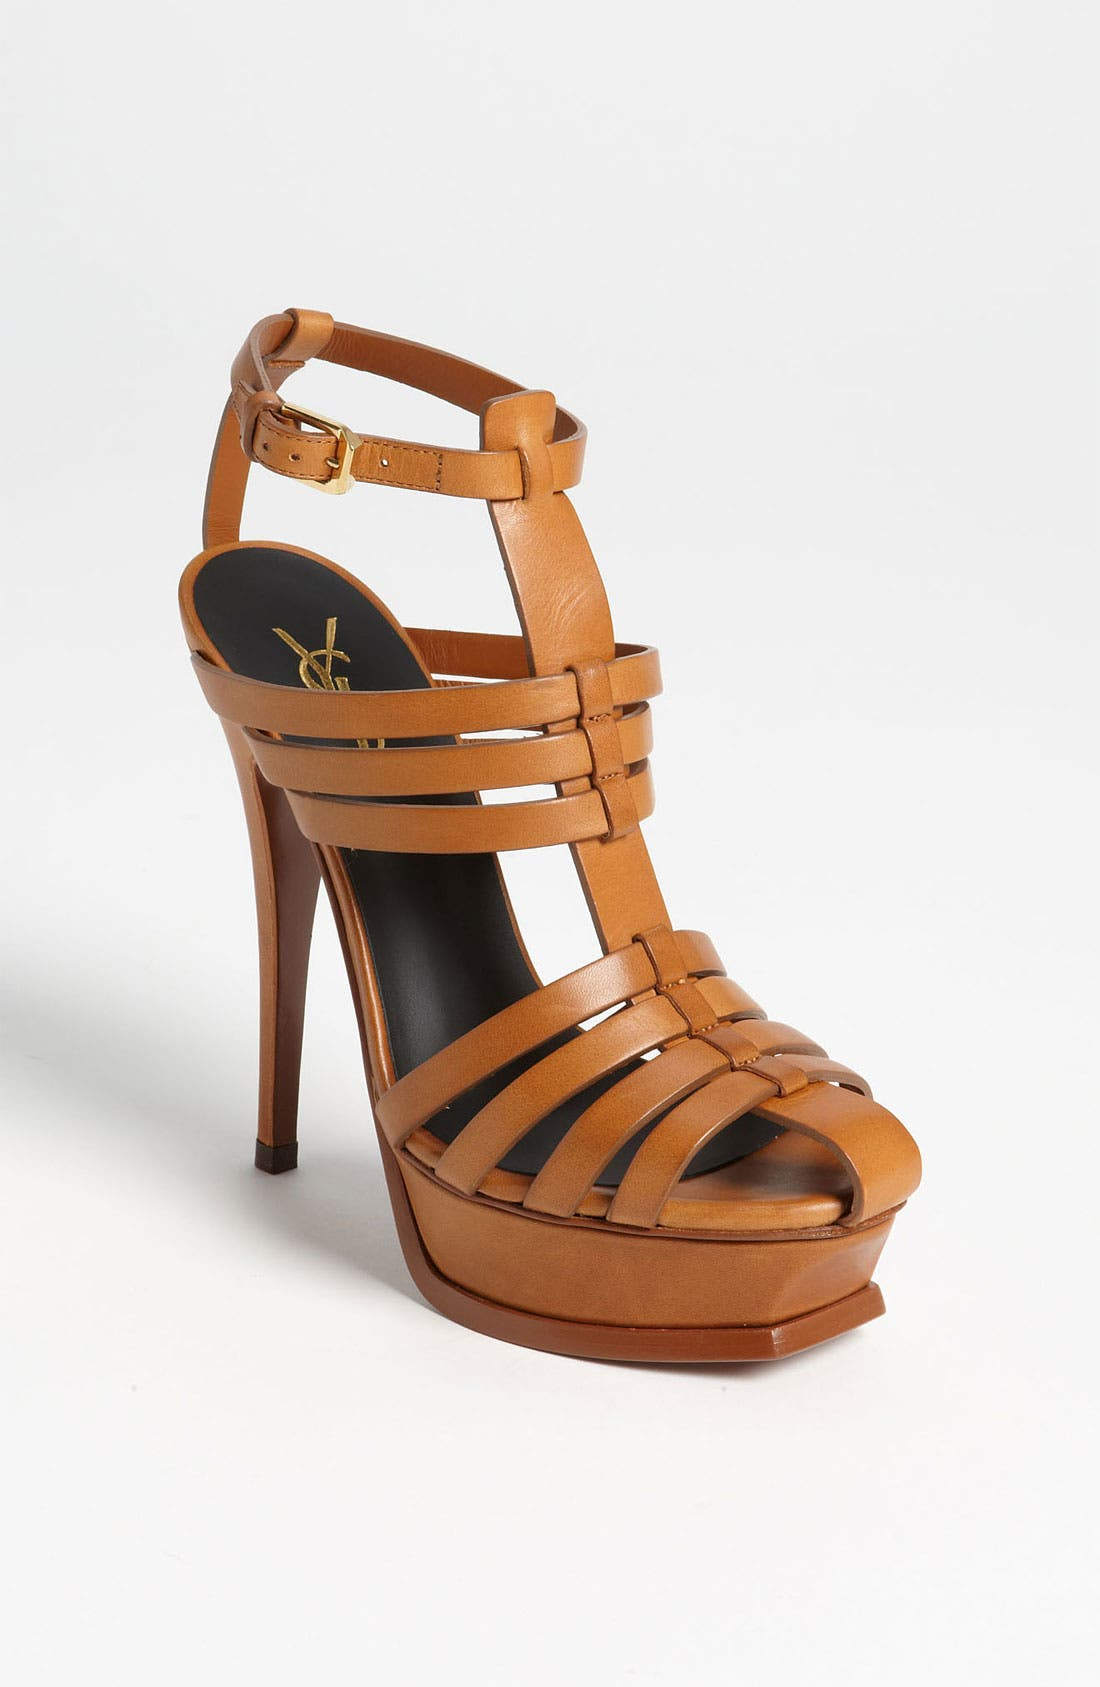 Alternate Image 1 Selected - Saint Laurent 'Tribute Gladiator' Sandal